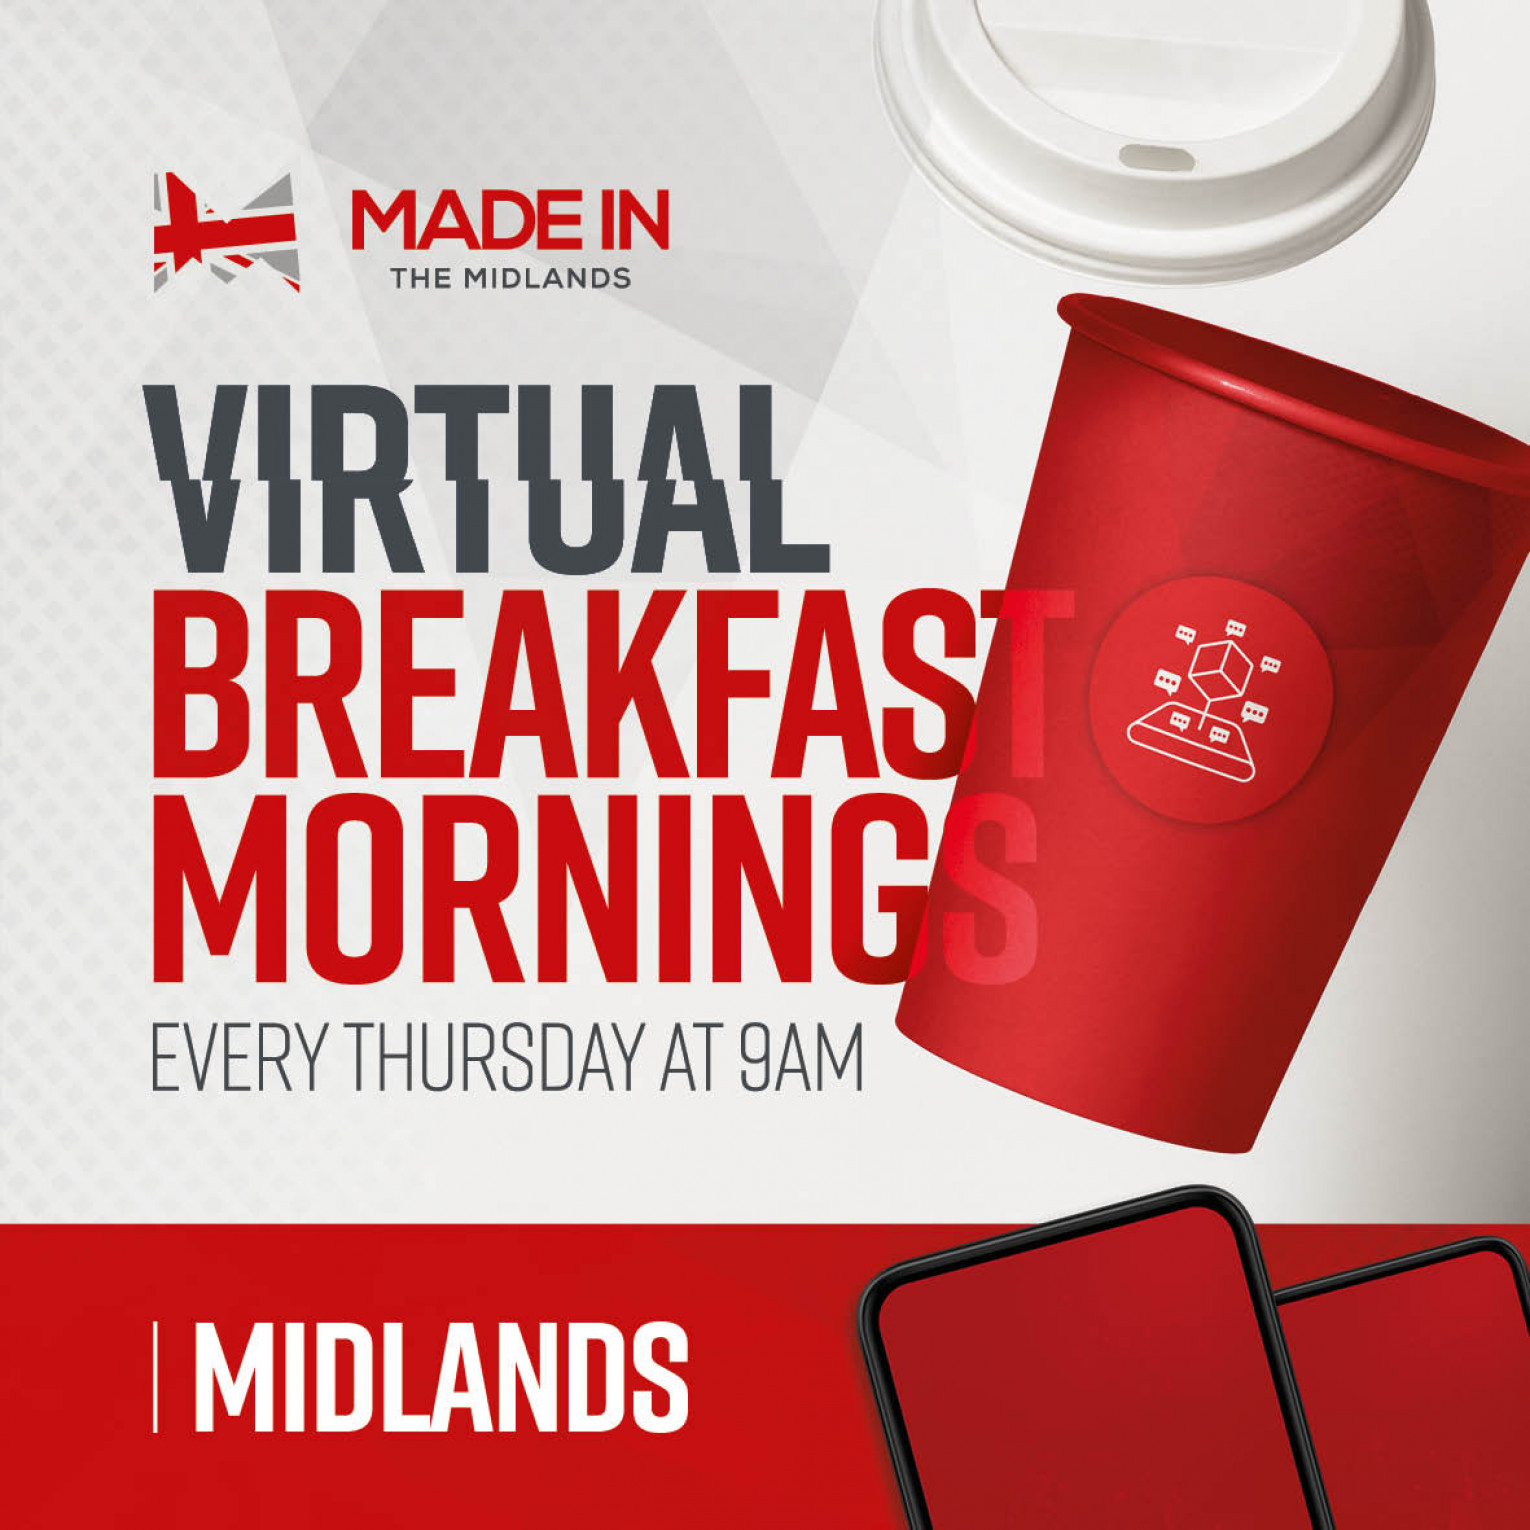 Made in the Midlands Virtual Breakfast with Atlas Copco